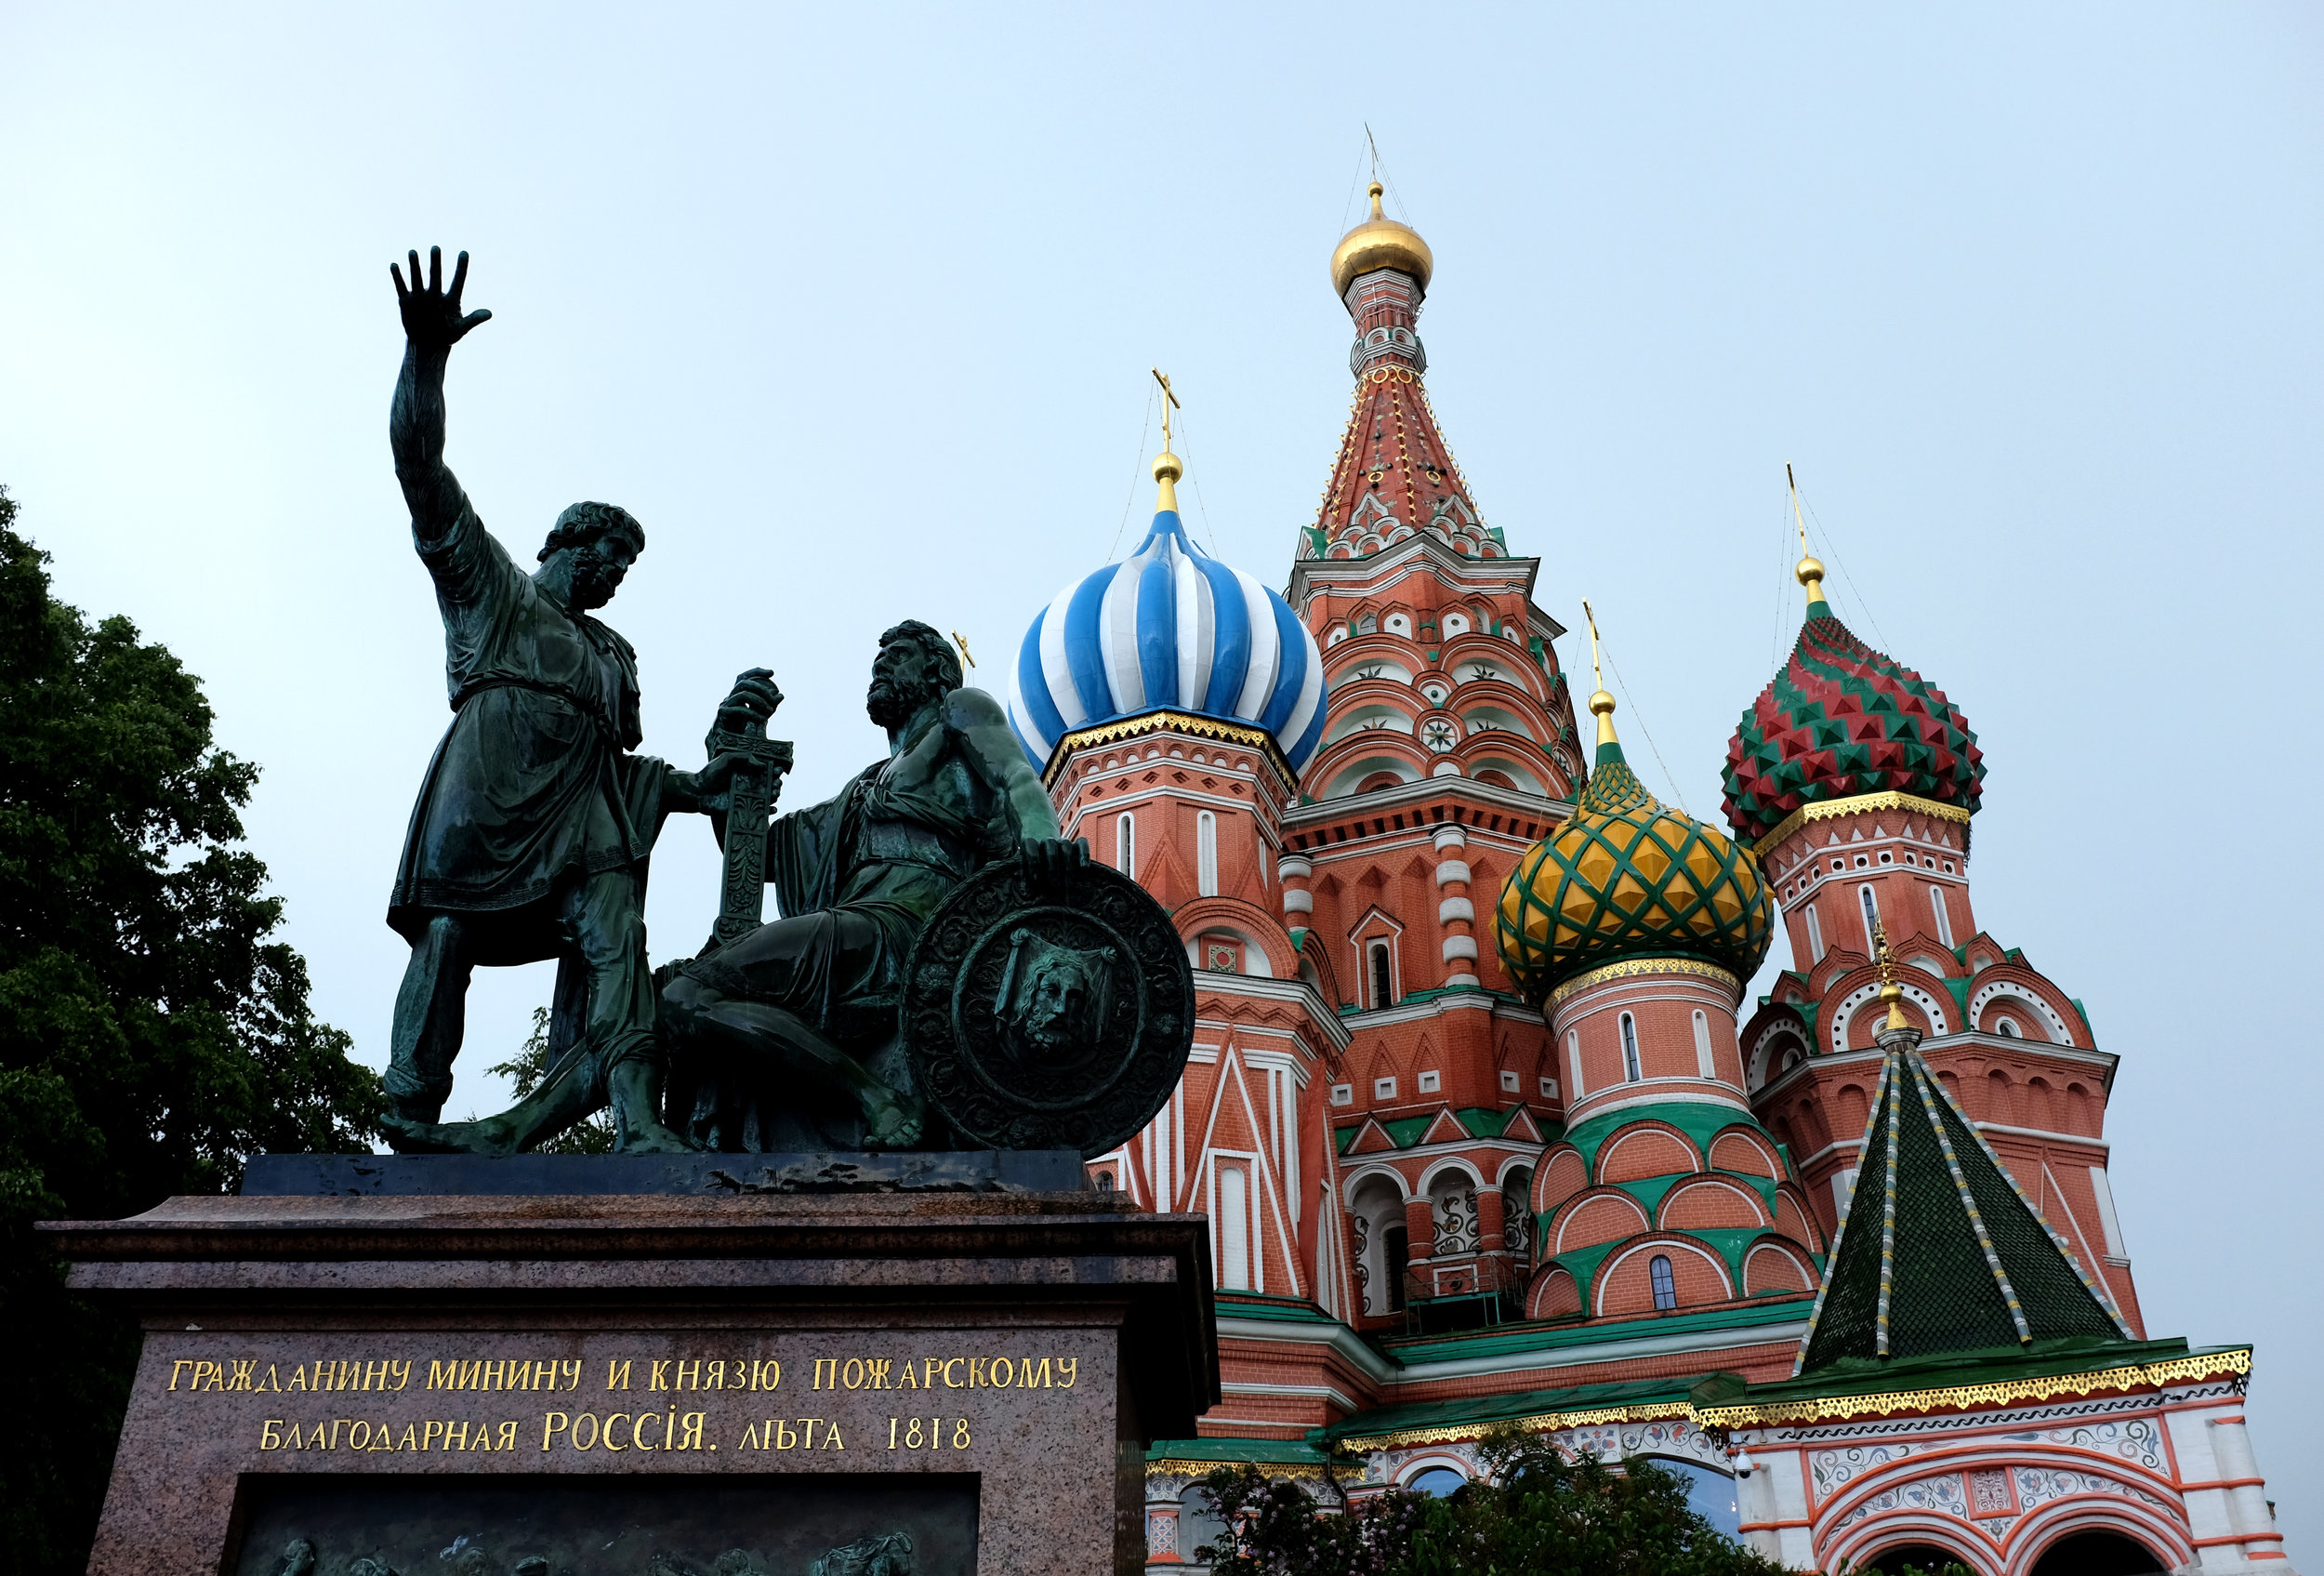 St. Basil's Cathedral | Moscow, Russia